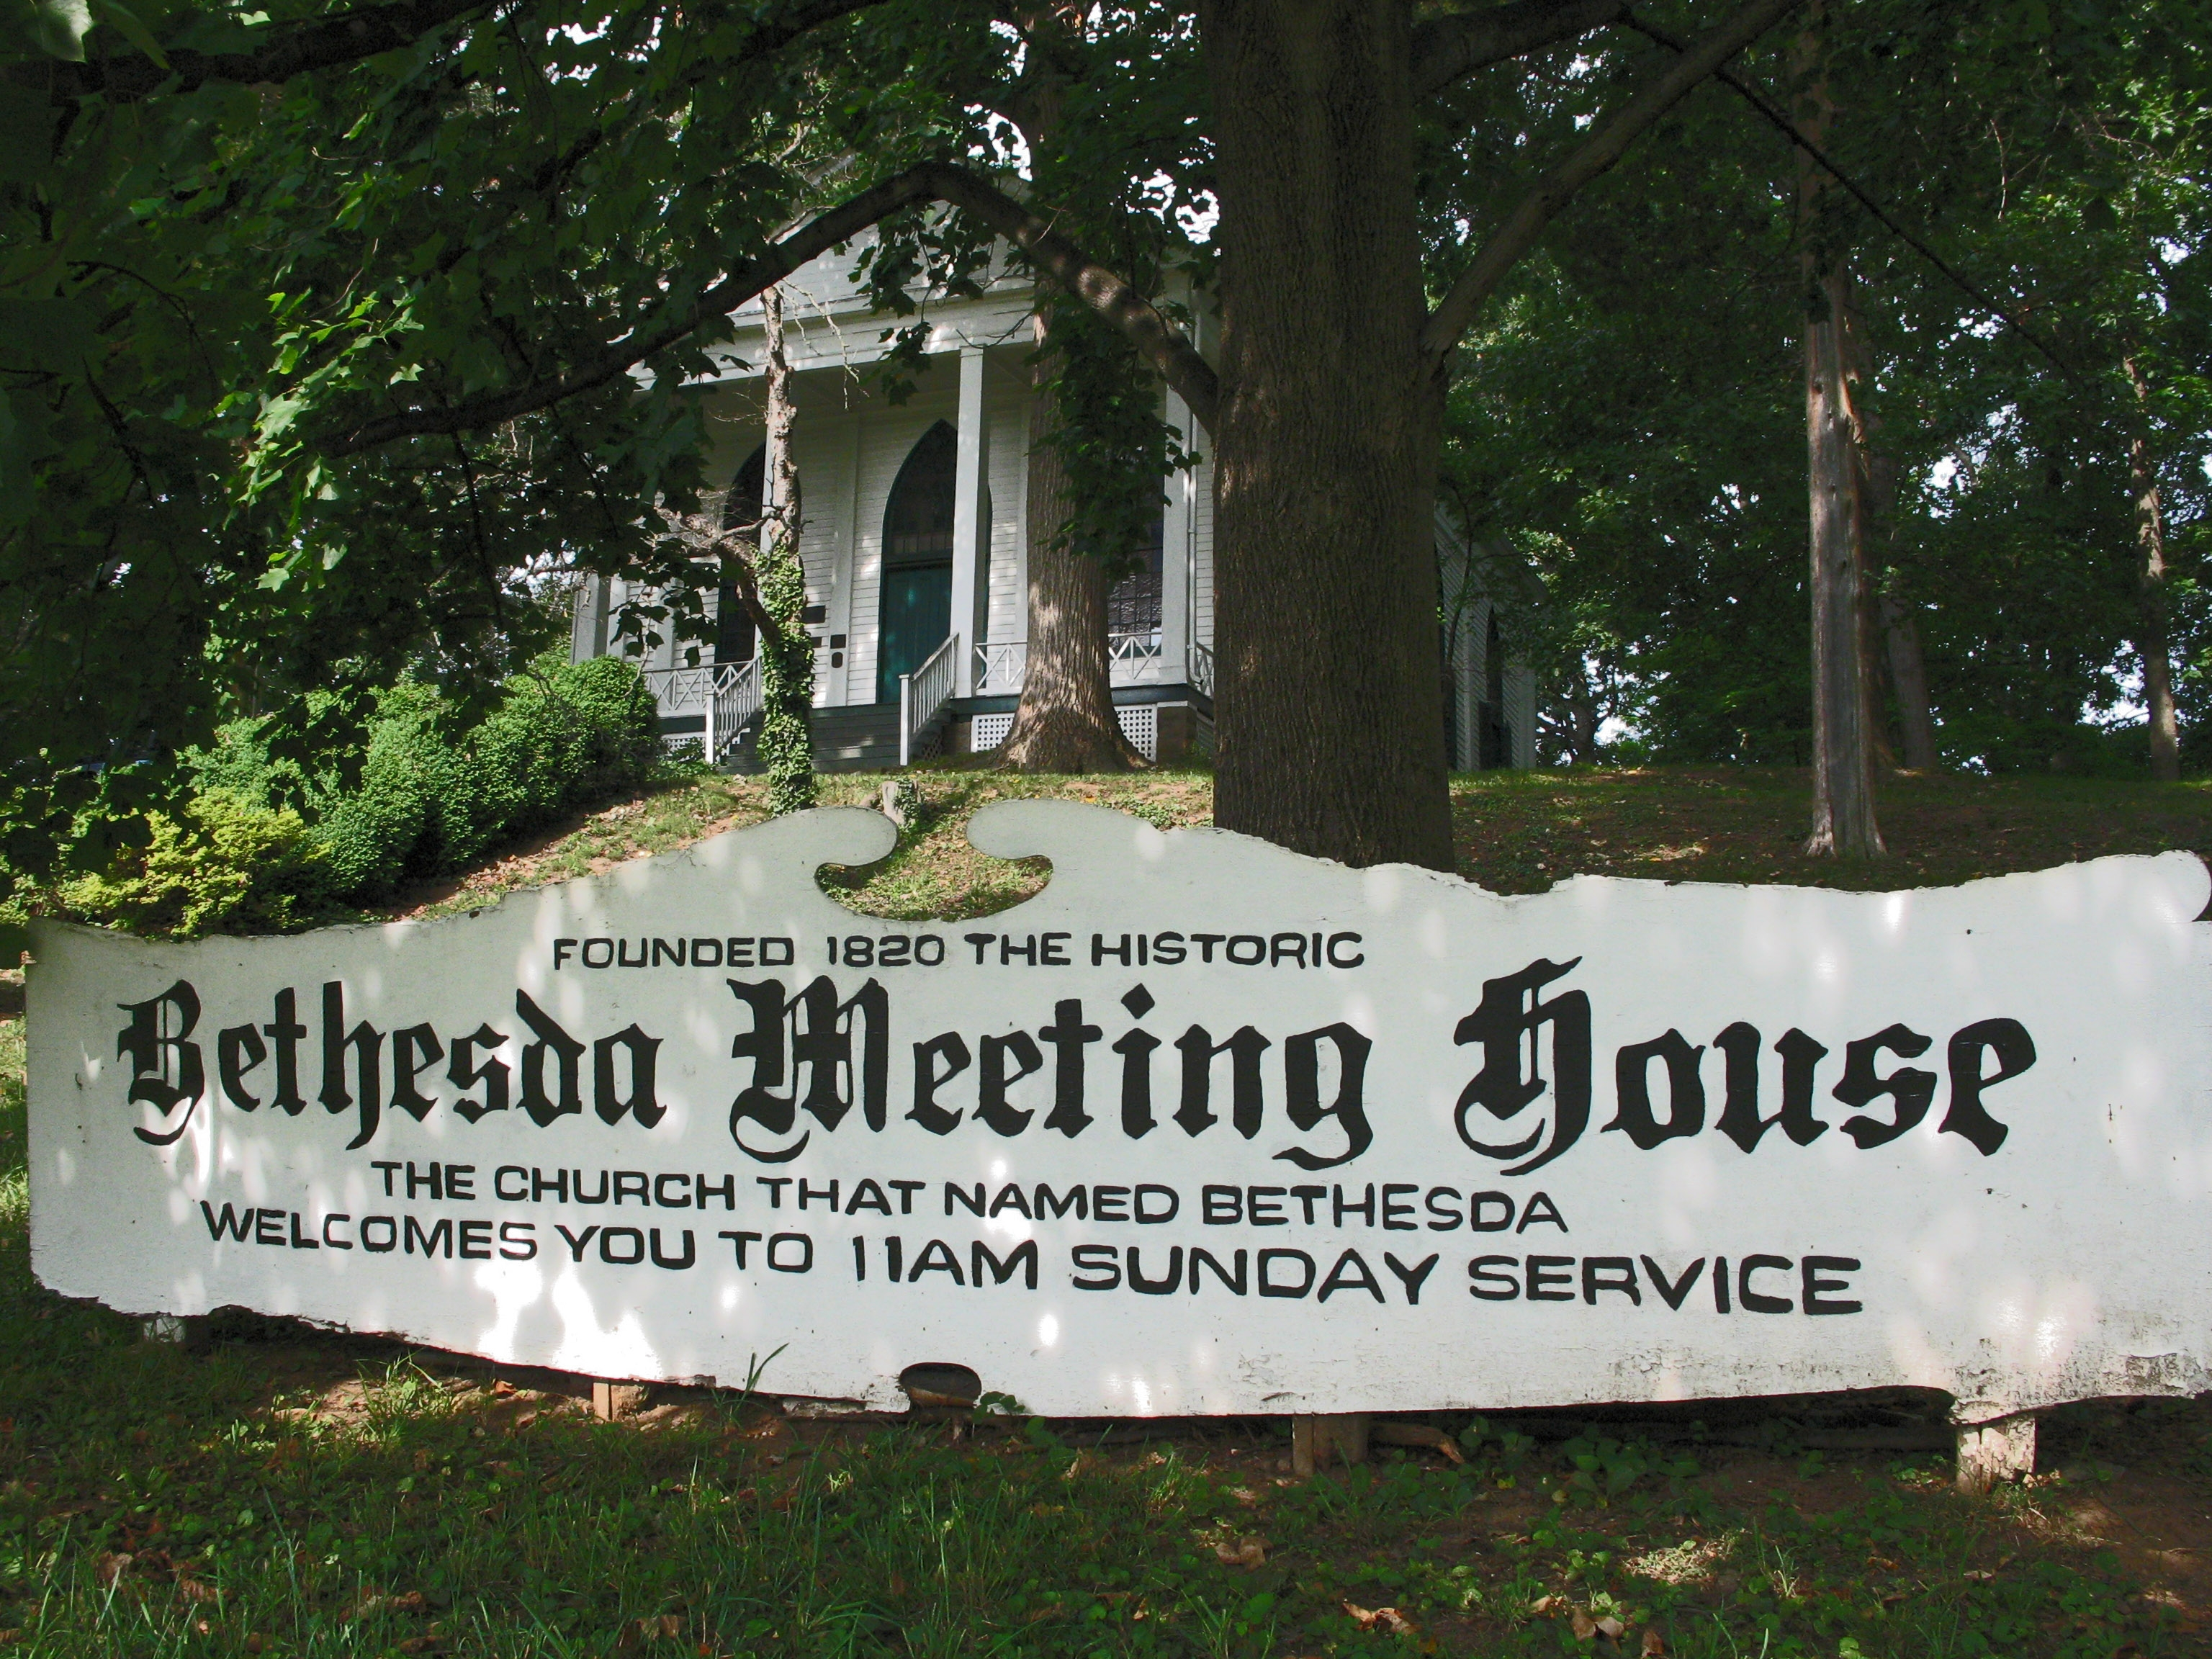 Bethesda Meeting House by Allen C. Browne on HMDB.org (reproduced under Fair Use)